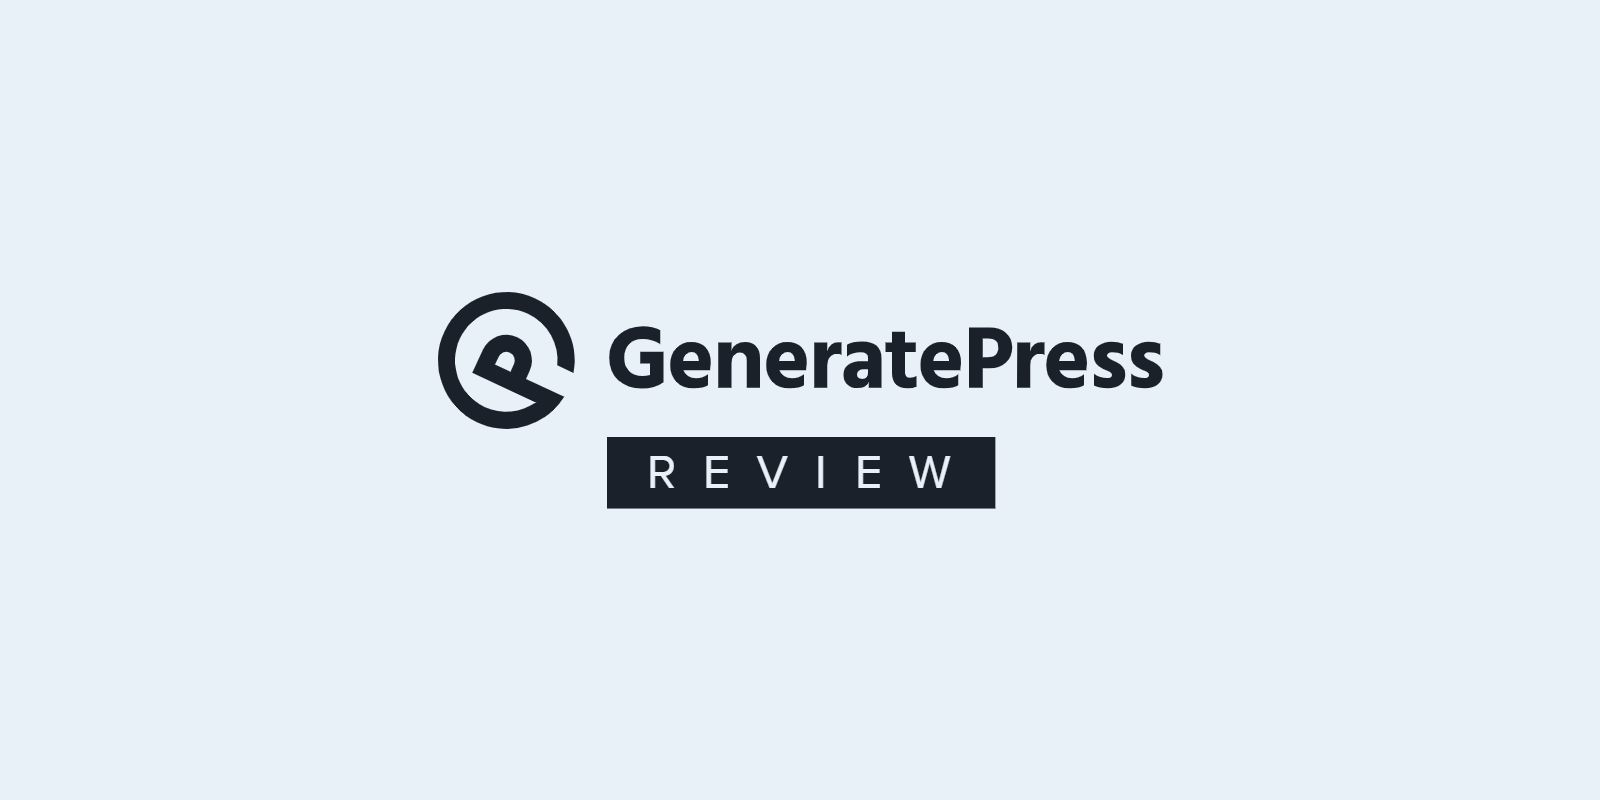 GeneratePress Review — Possibly the Best WordPress Theme in 2021